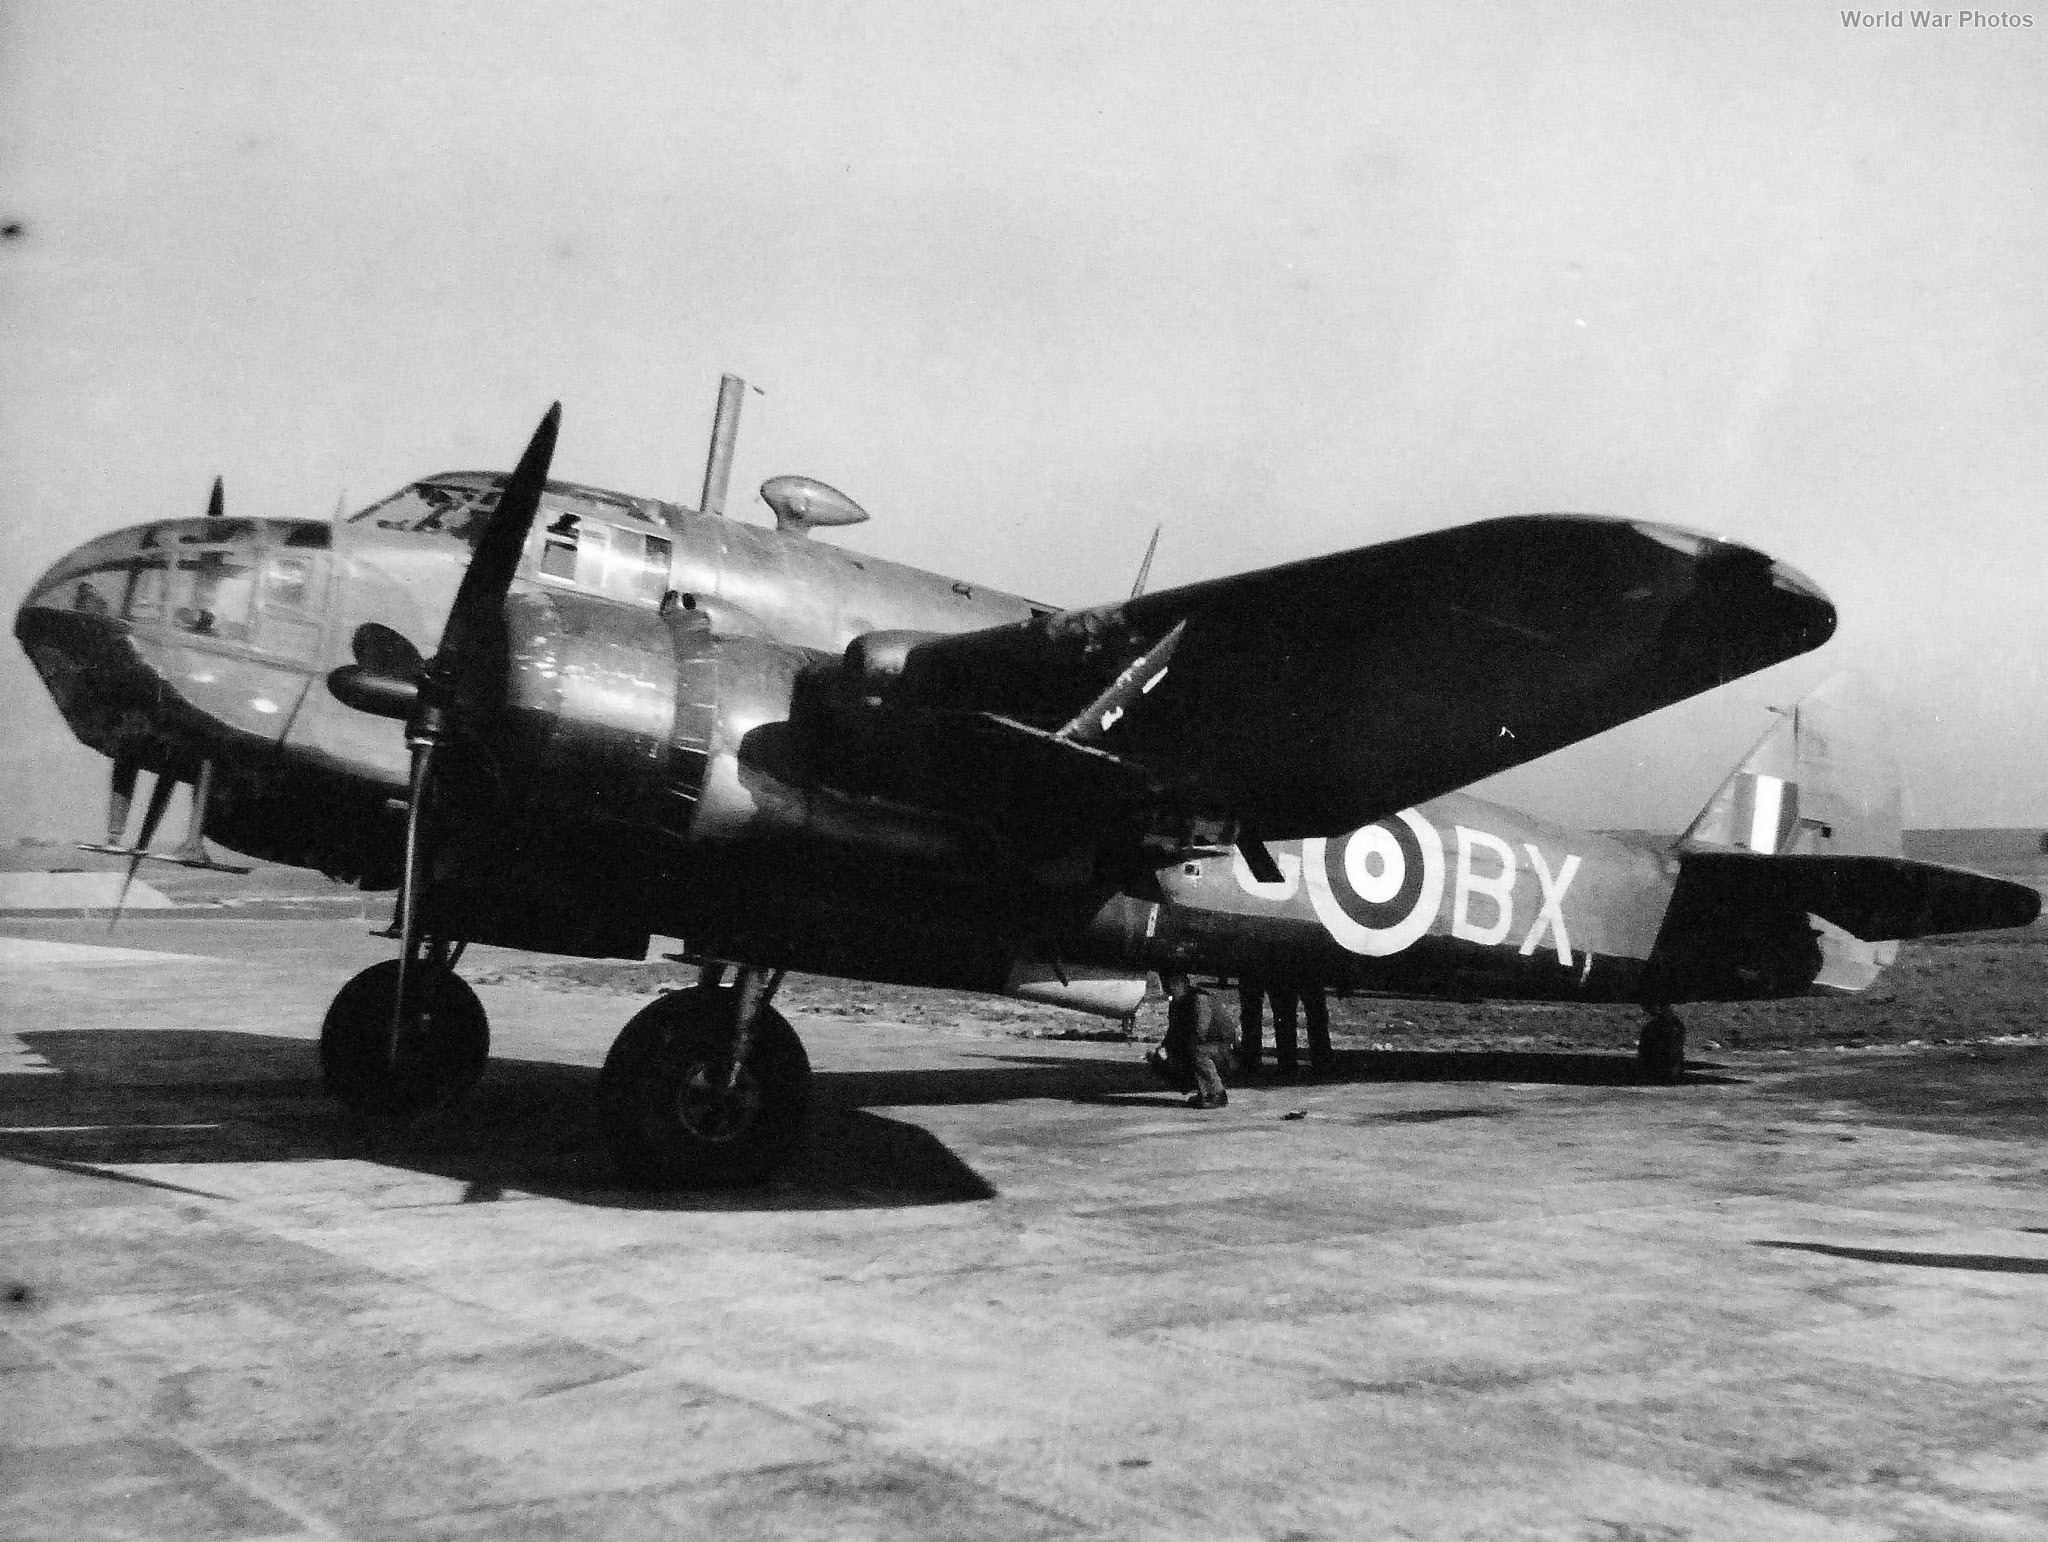 Beaufort Mk II of No. 86 Squadron RAF 14 May 1942